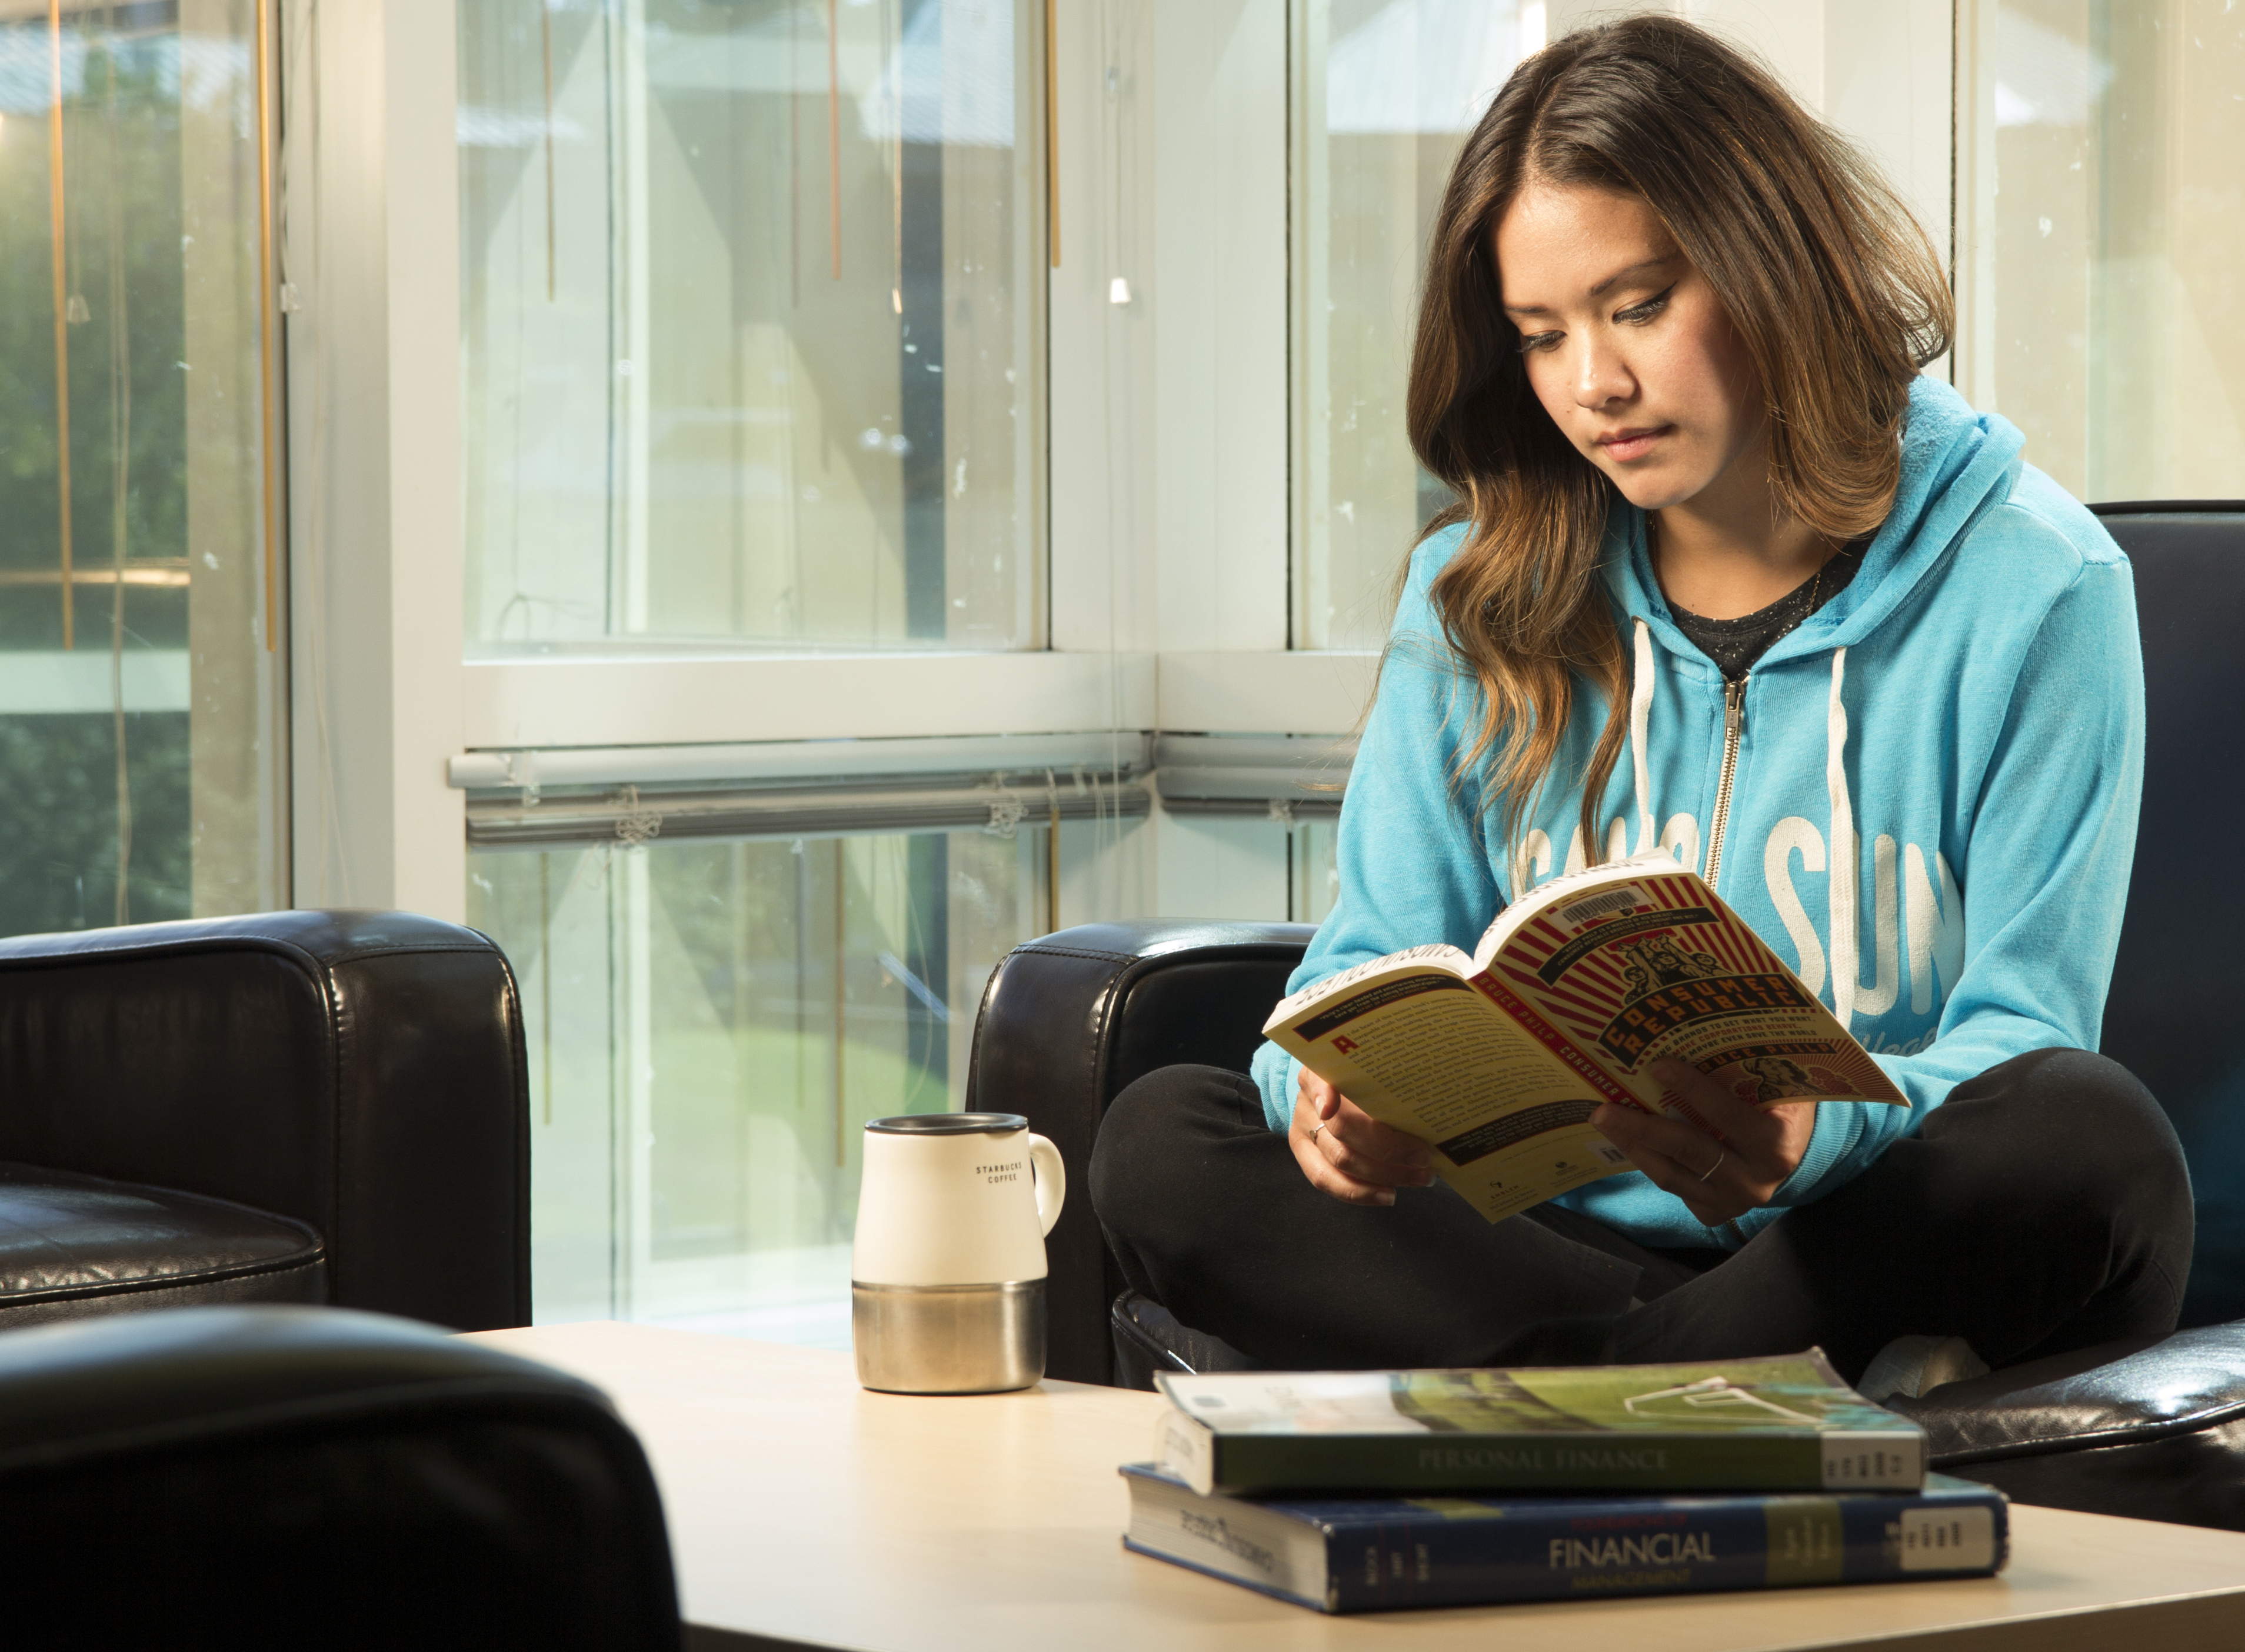 Indigenous Studies female reading